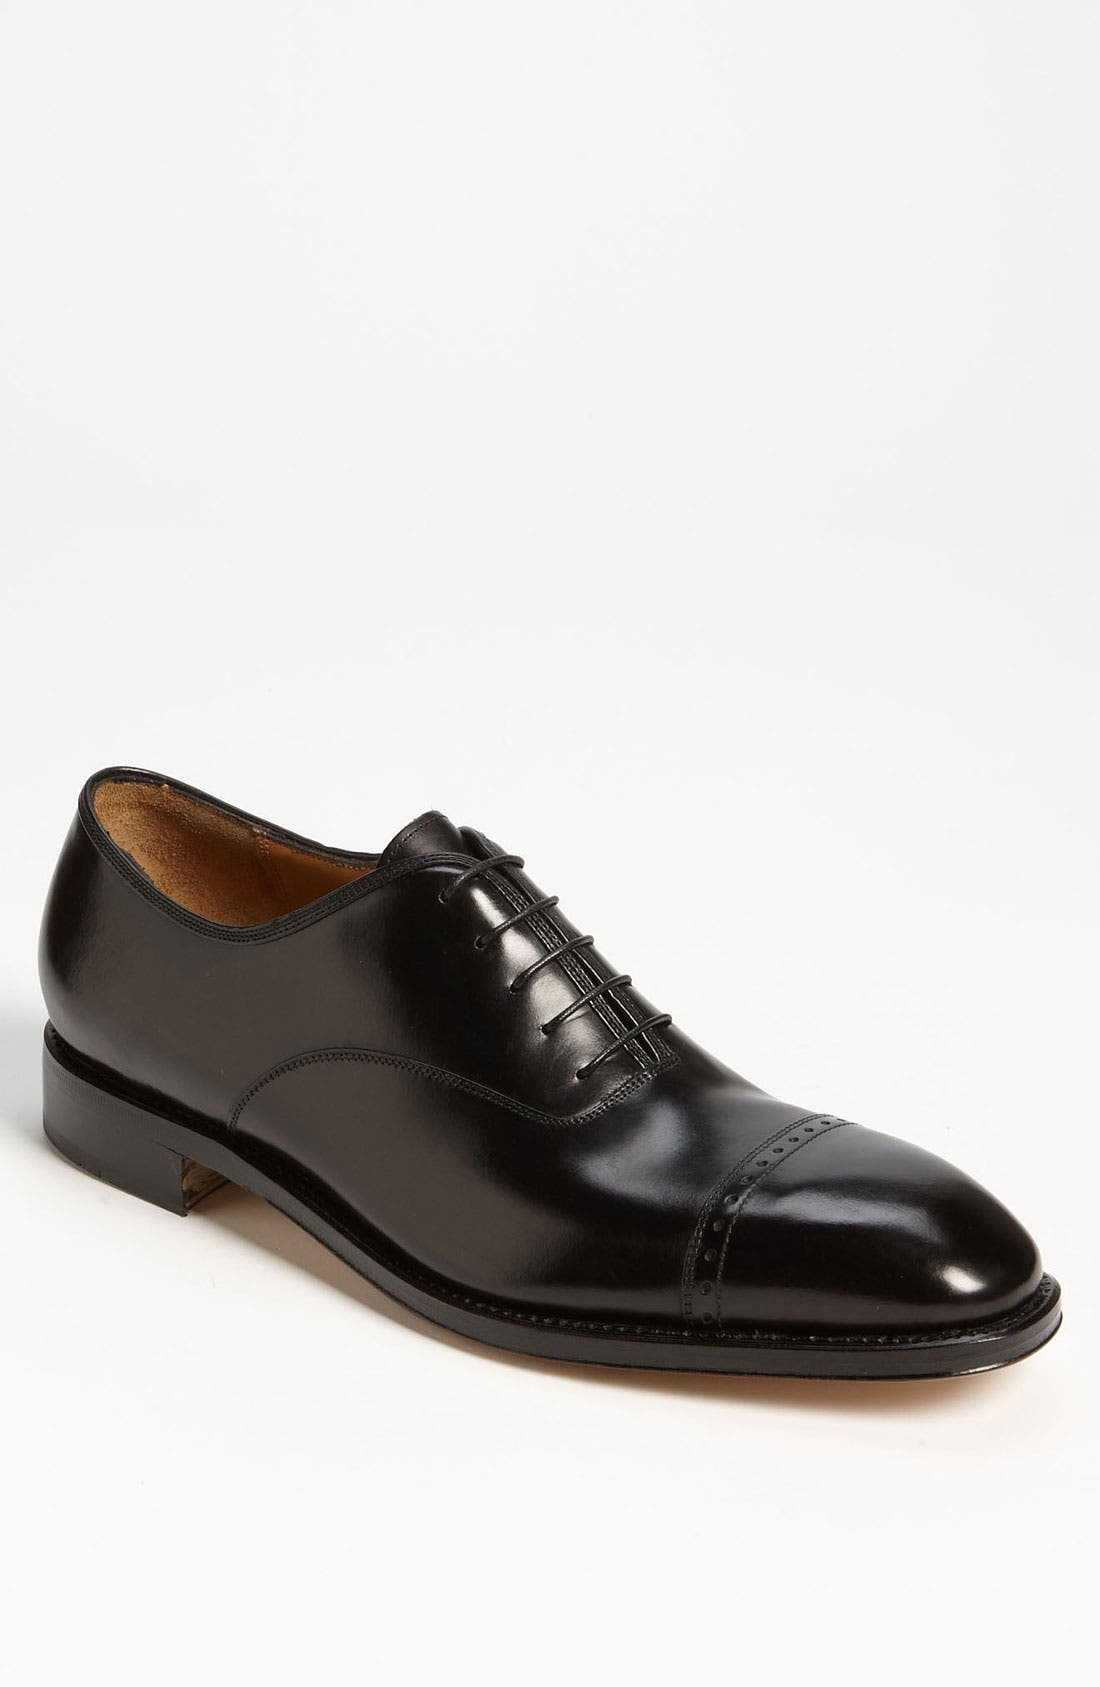 Main Image - Salvatore Ferragamo 'Domino' Cap Toe Oxford (Online Only)